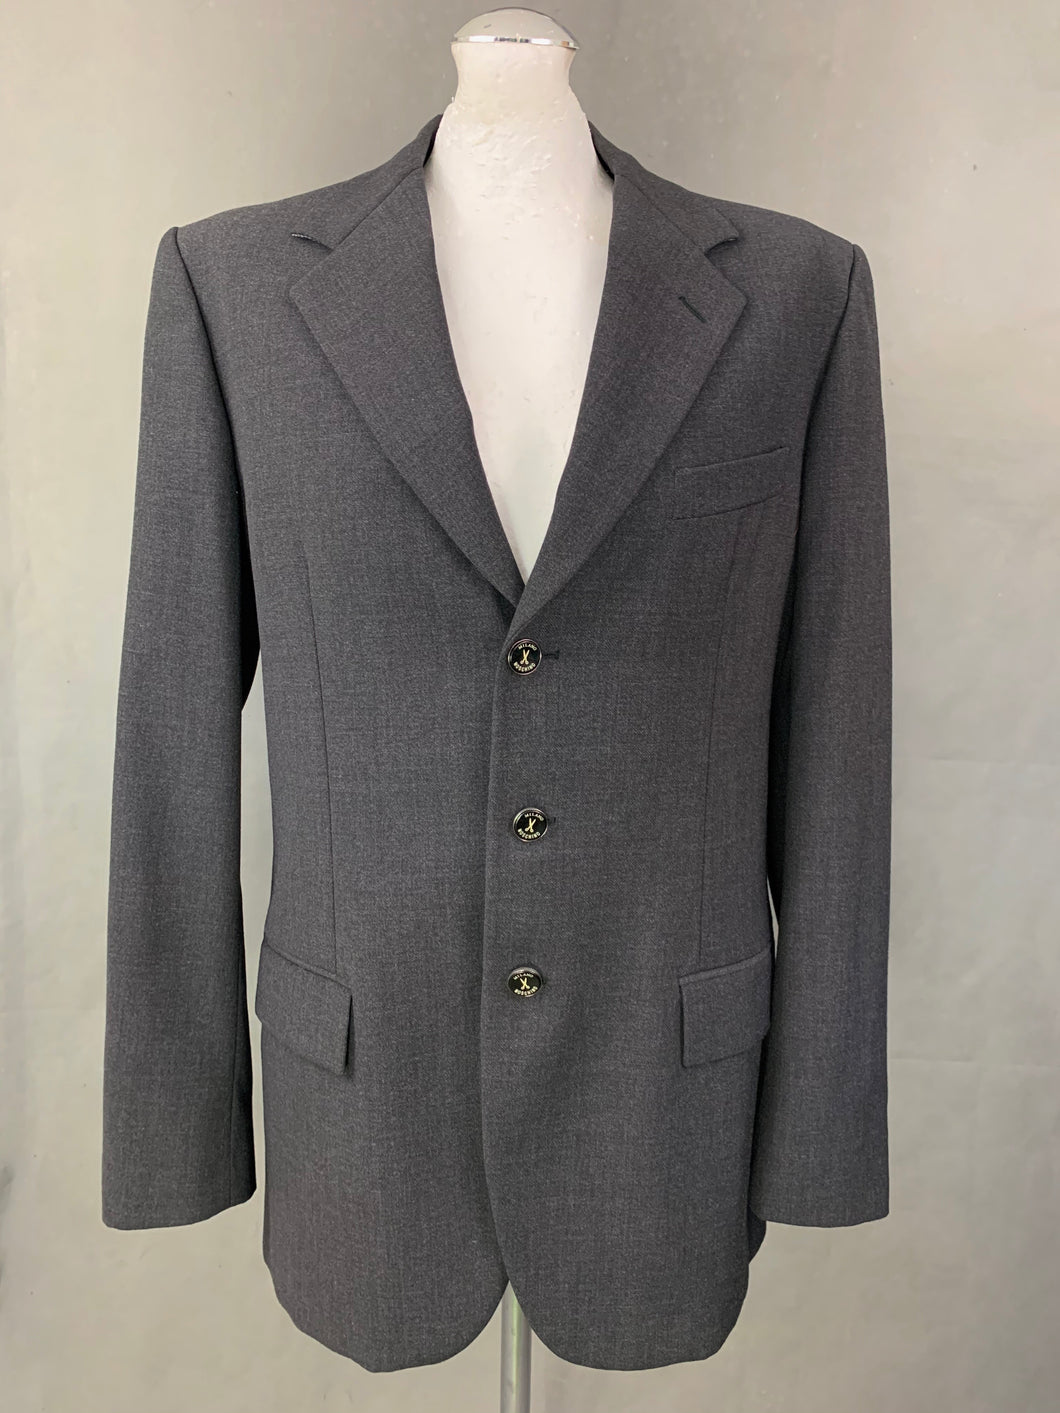 MOSCHINO CHEAP and CHIC Mens Grey BLAZER / JACKET Size IT 52 - UK 42